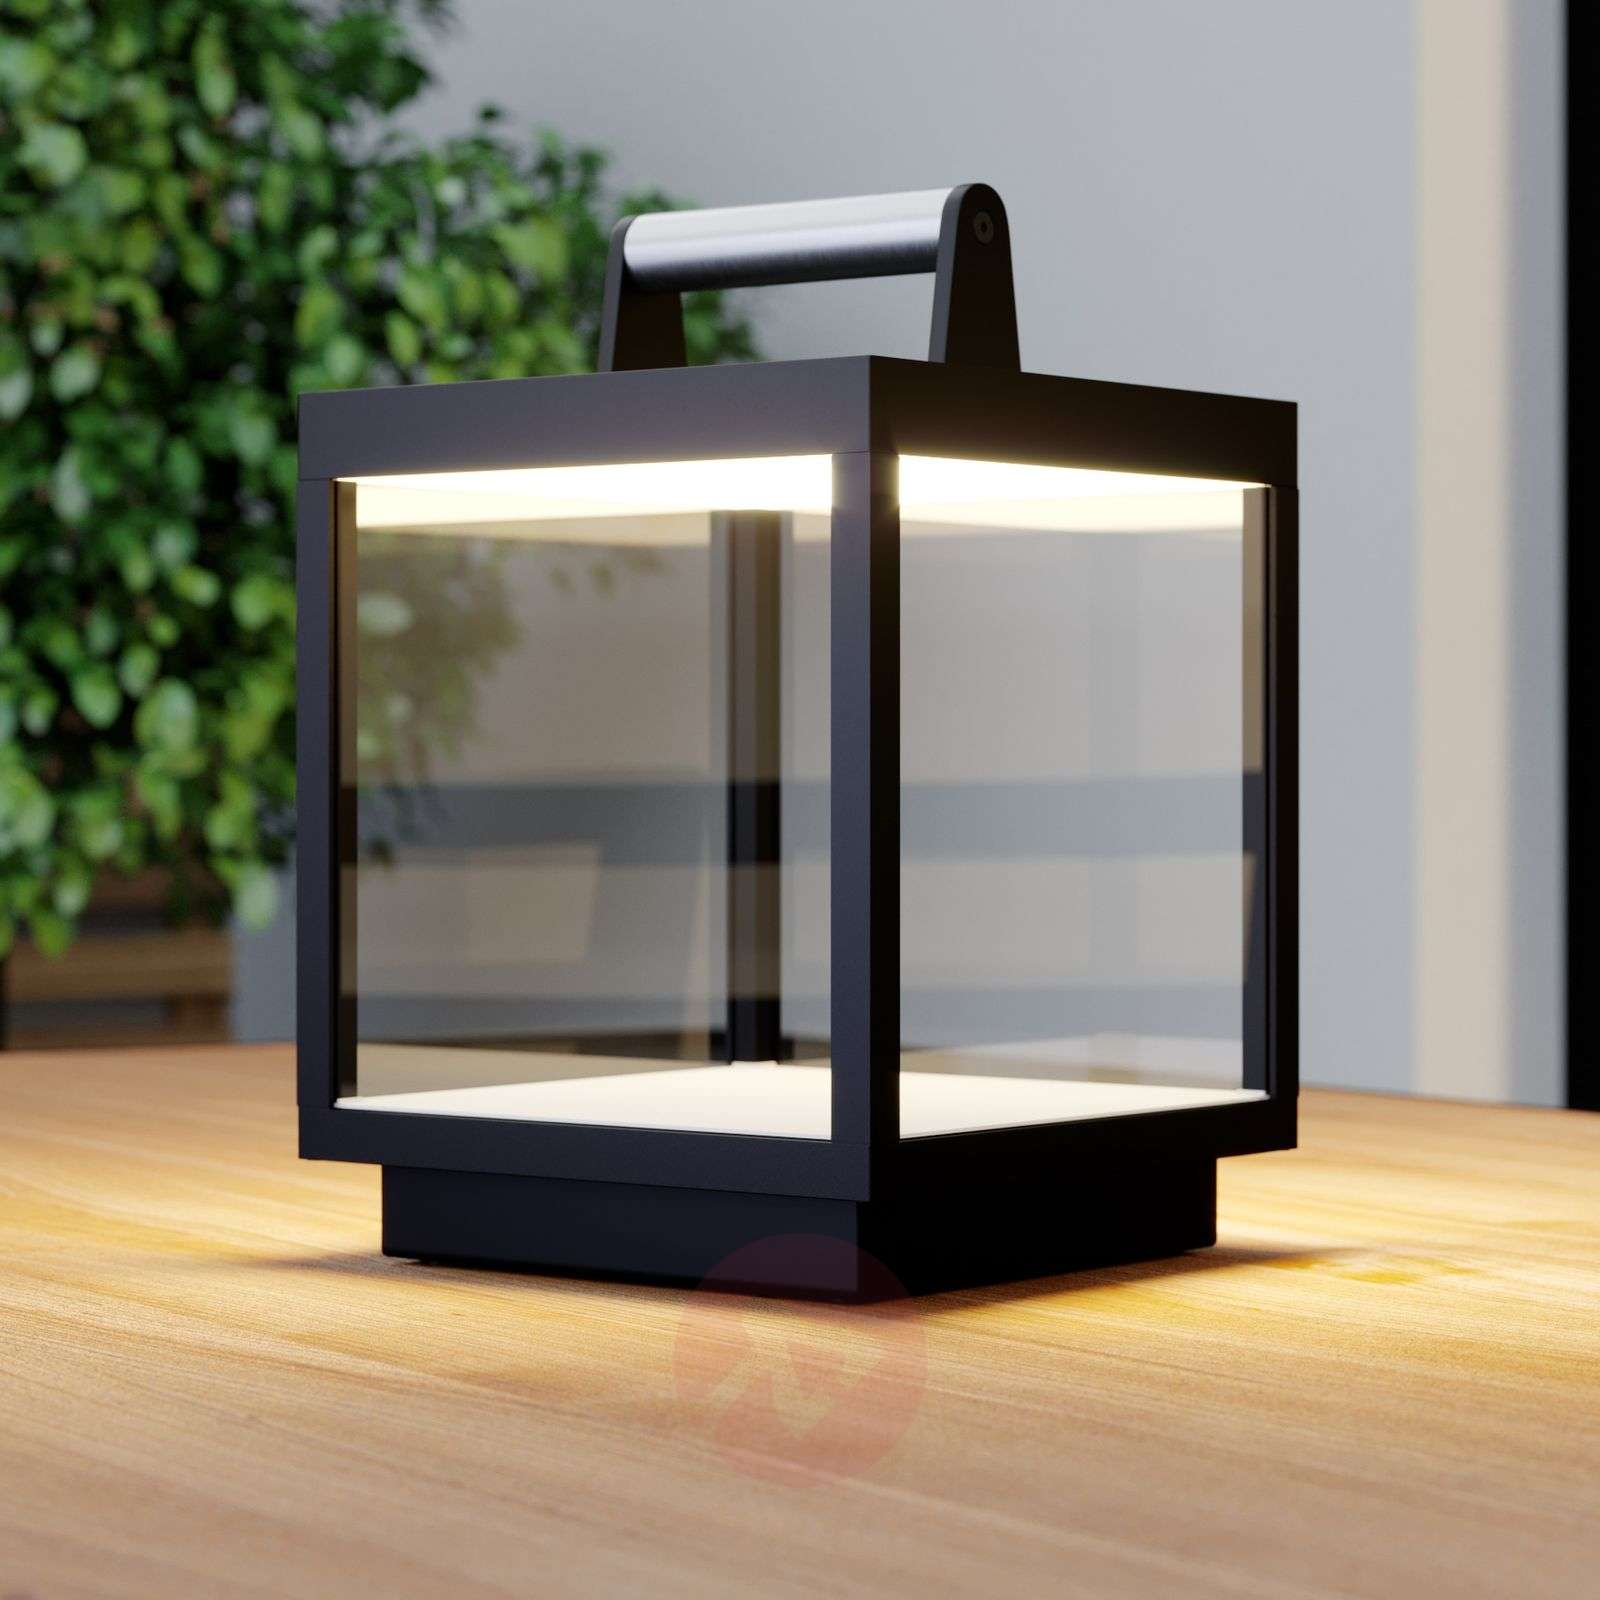 LED table lamp Cube for outdoors, rechargeable-9619161-03